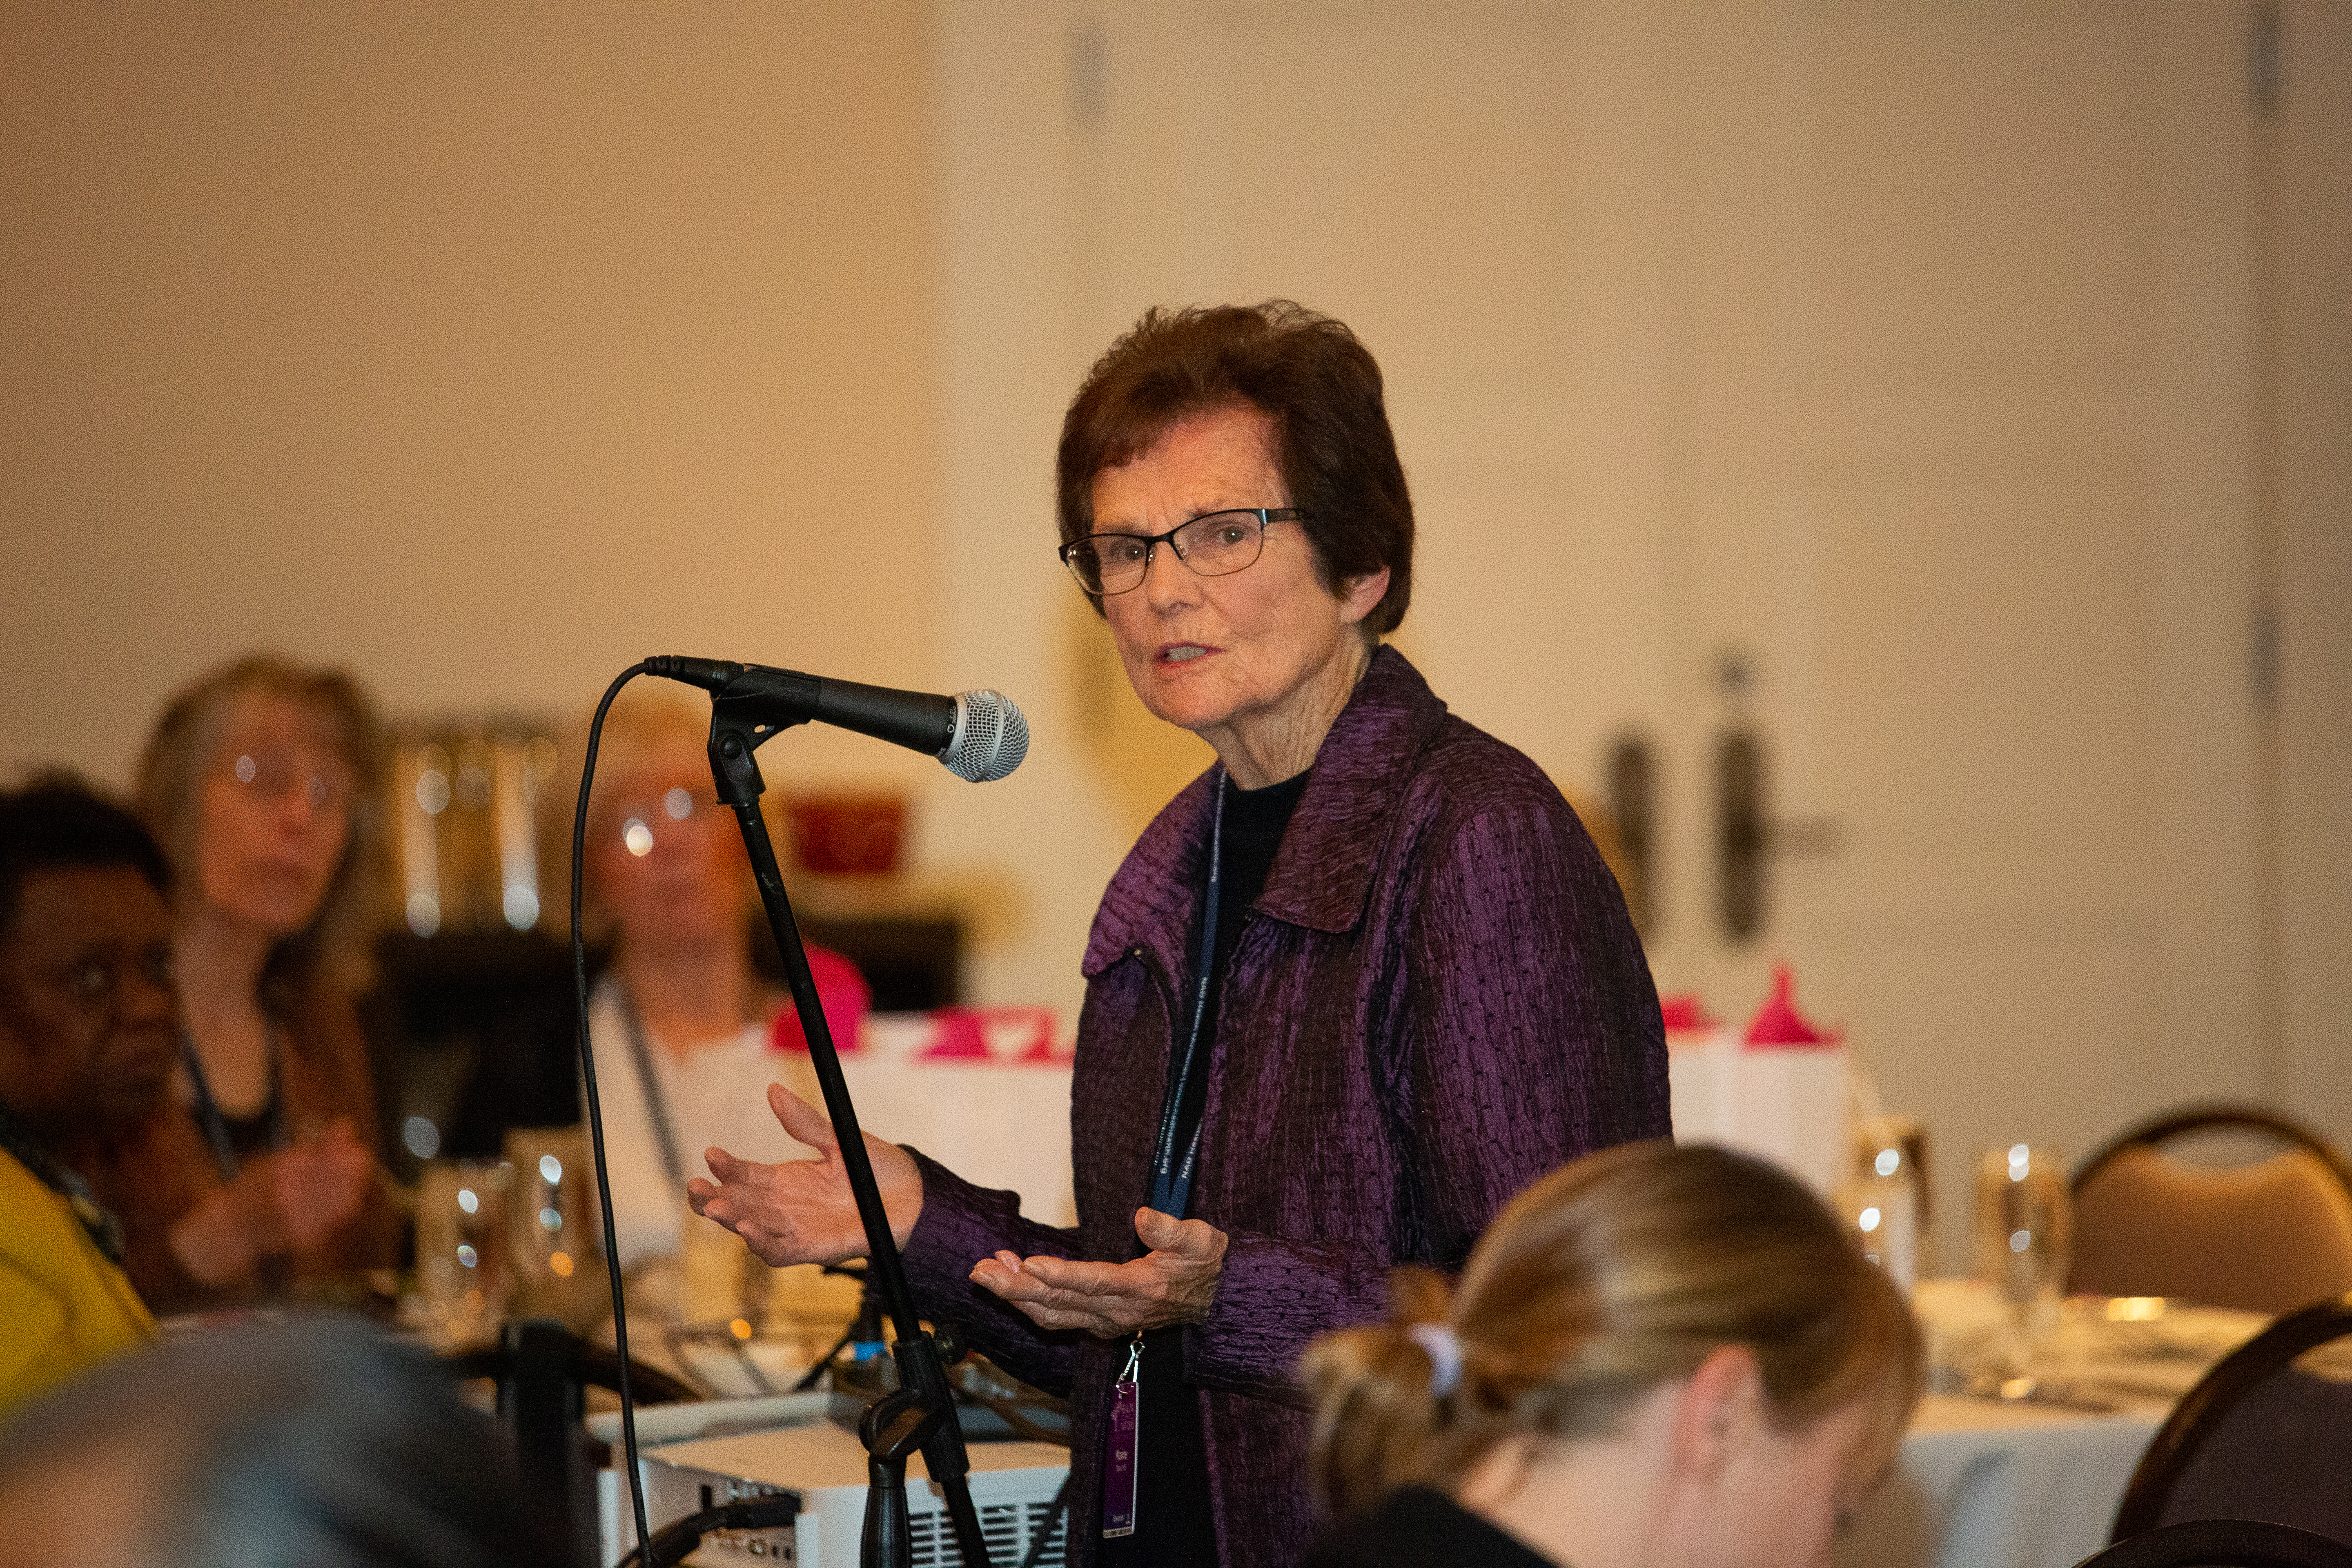 Maxine Bloom shares her passion for faith community nursing during the AAFCN banquet on Jan. 24.